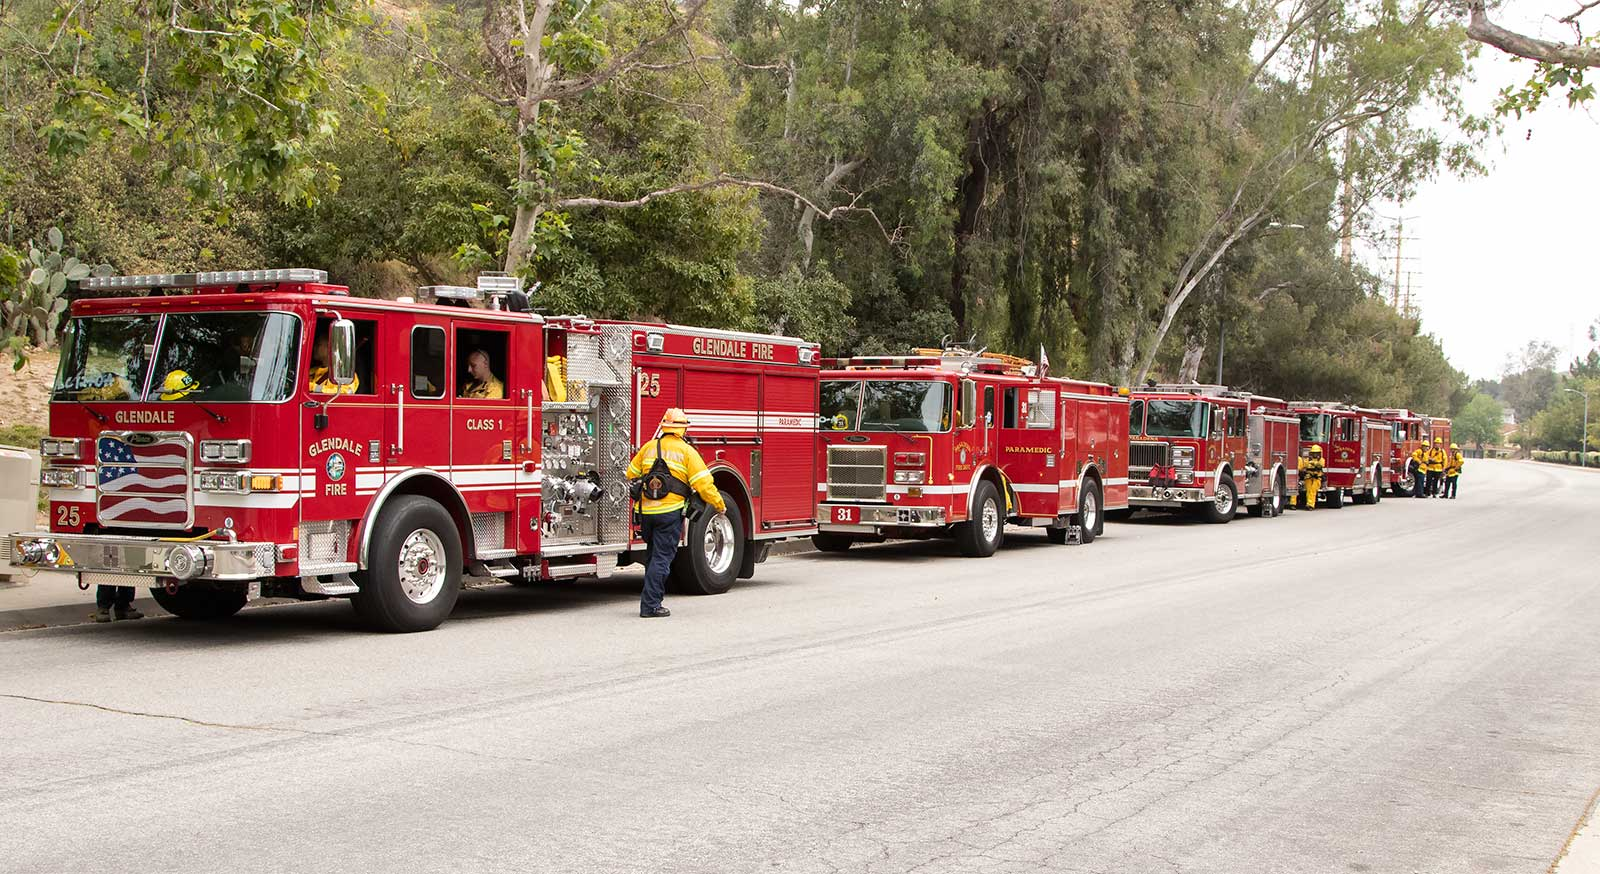 Firetrucks ligned up to take part in a wildfire drill. Firefighters gather.